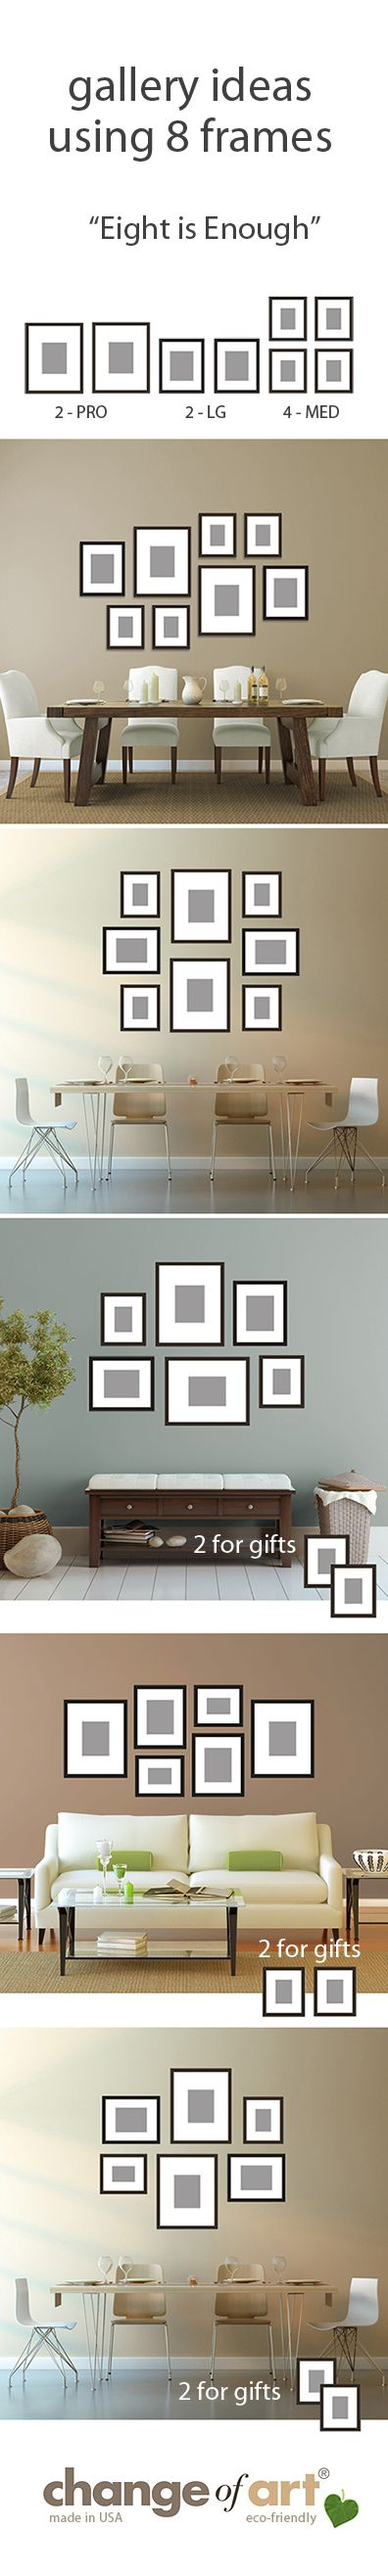 Just A Few Gallery Wall Ideas For Change Of Arts Eight Is Enough